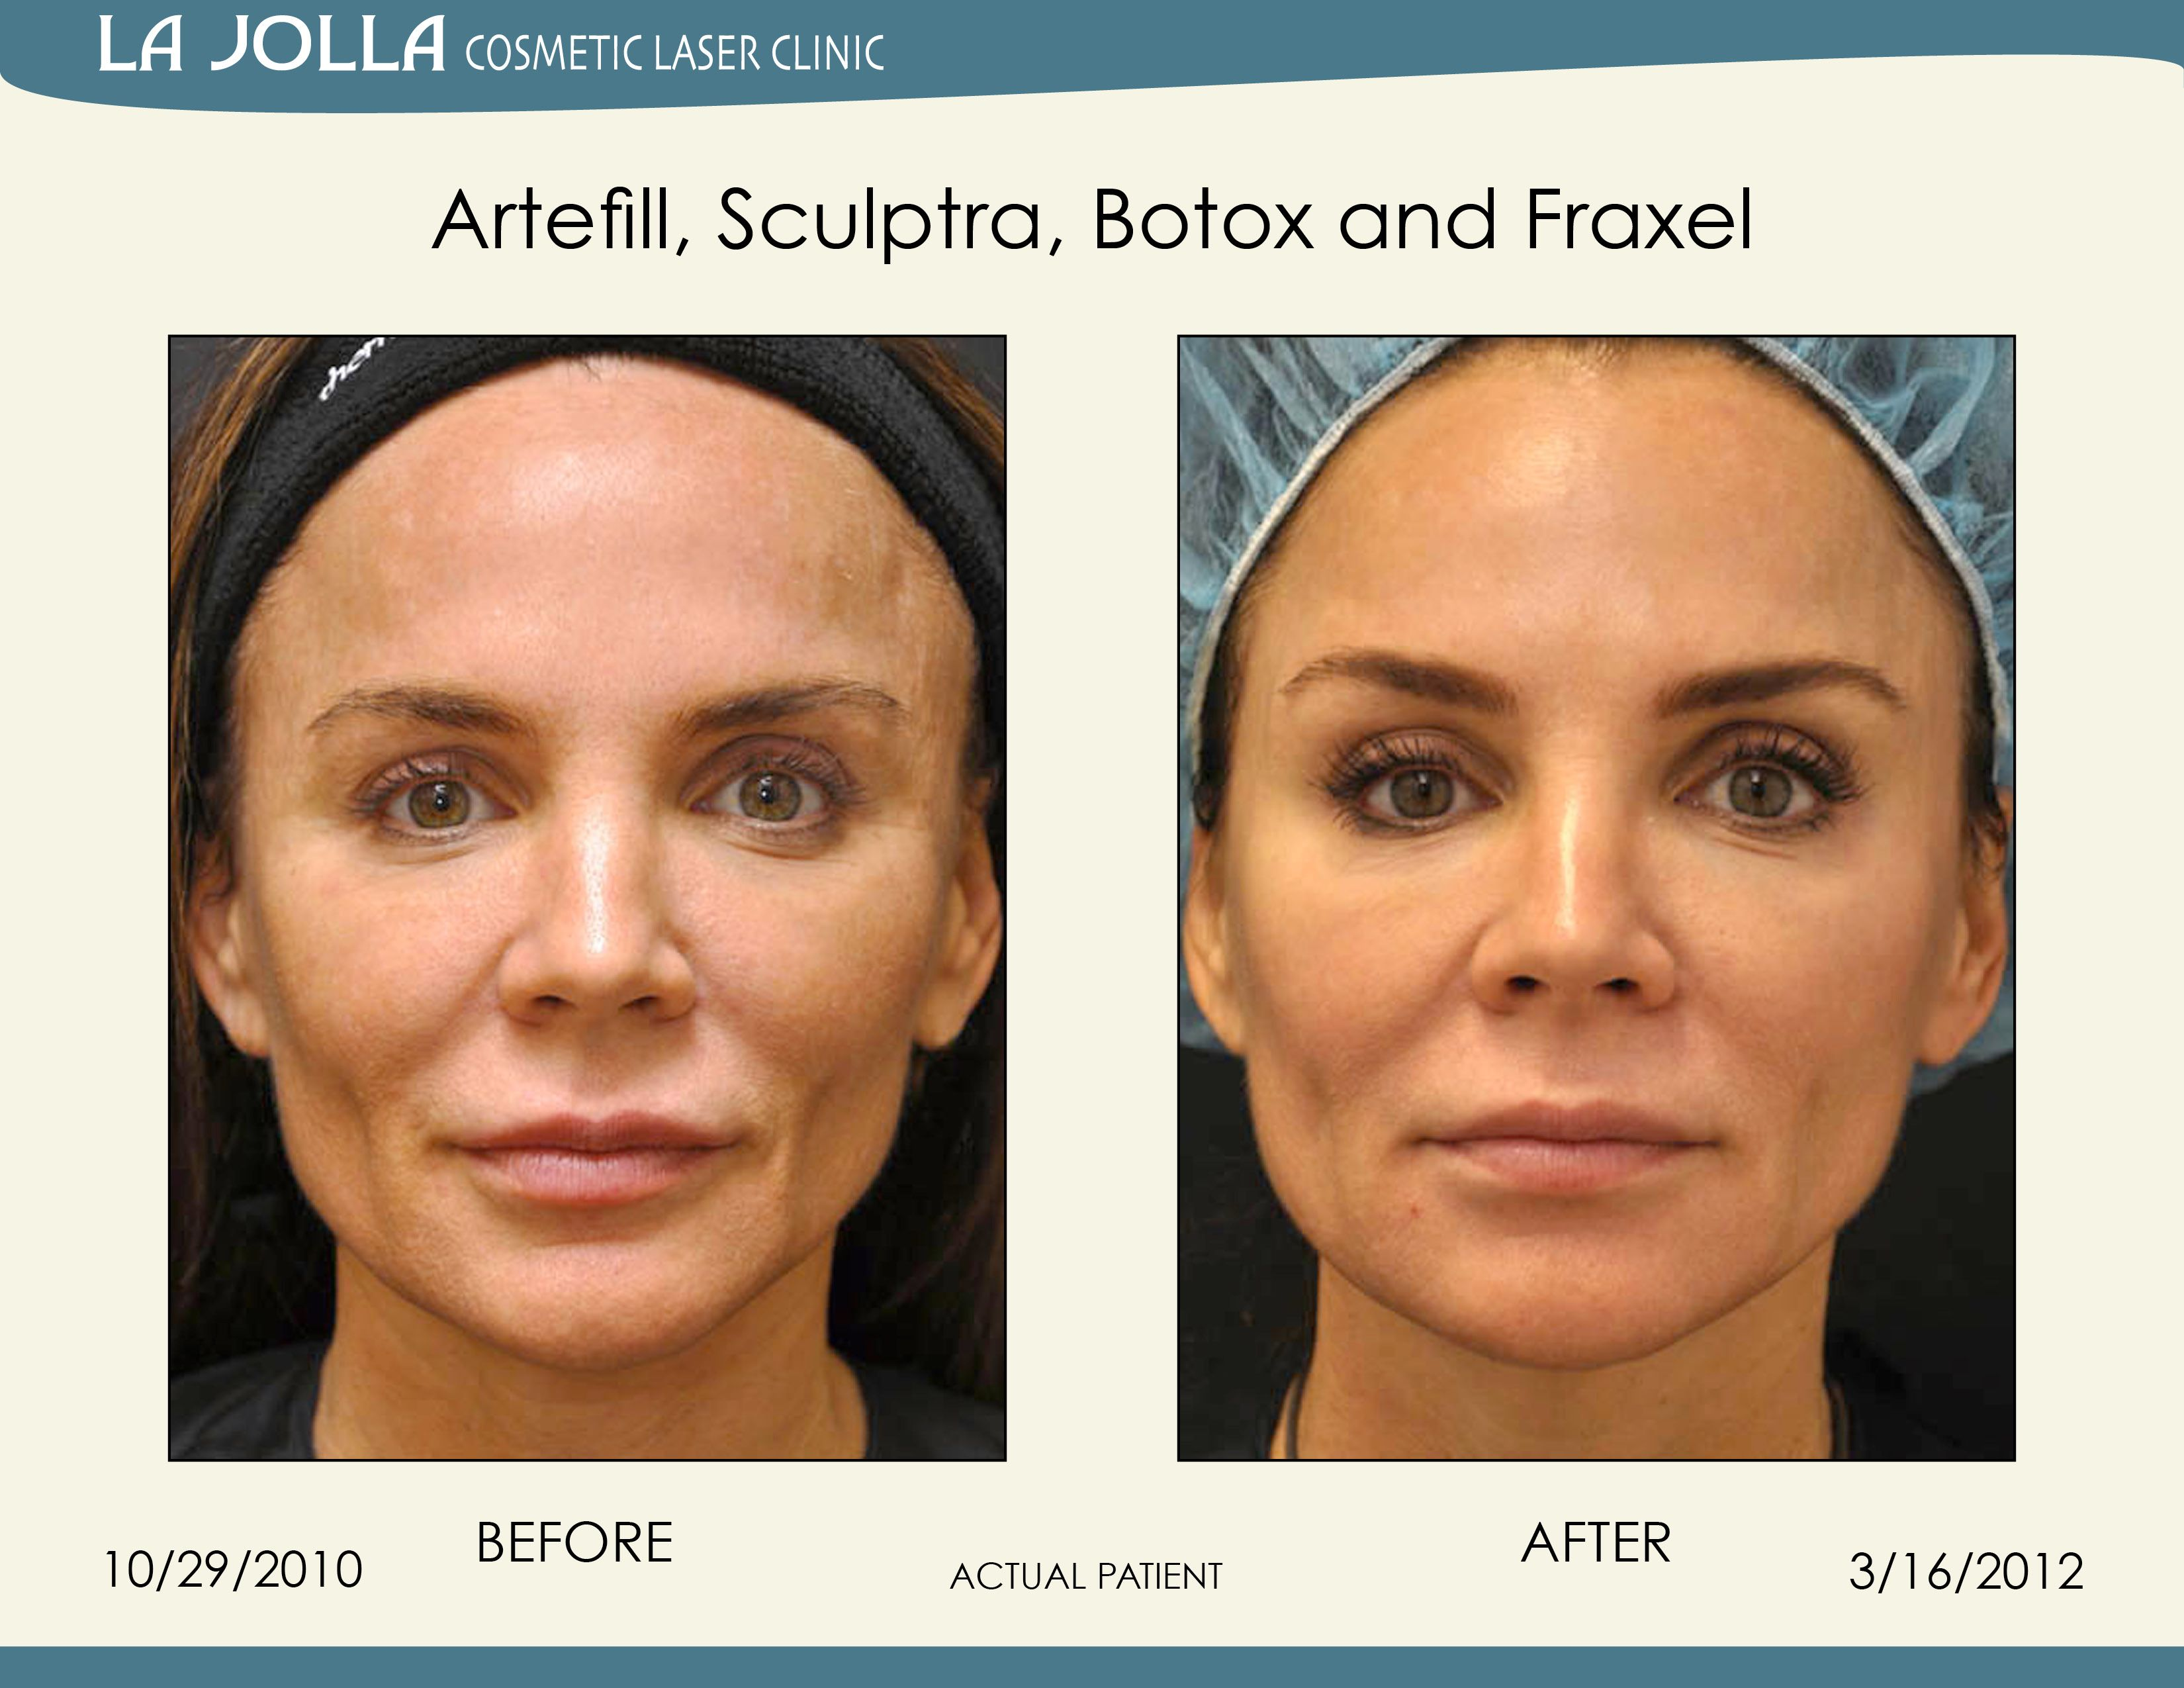 Patient Treated With Artefill Sculptra Botox And Fraxel